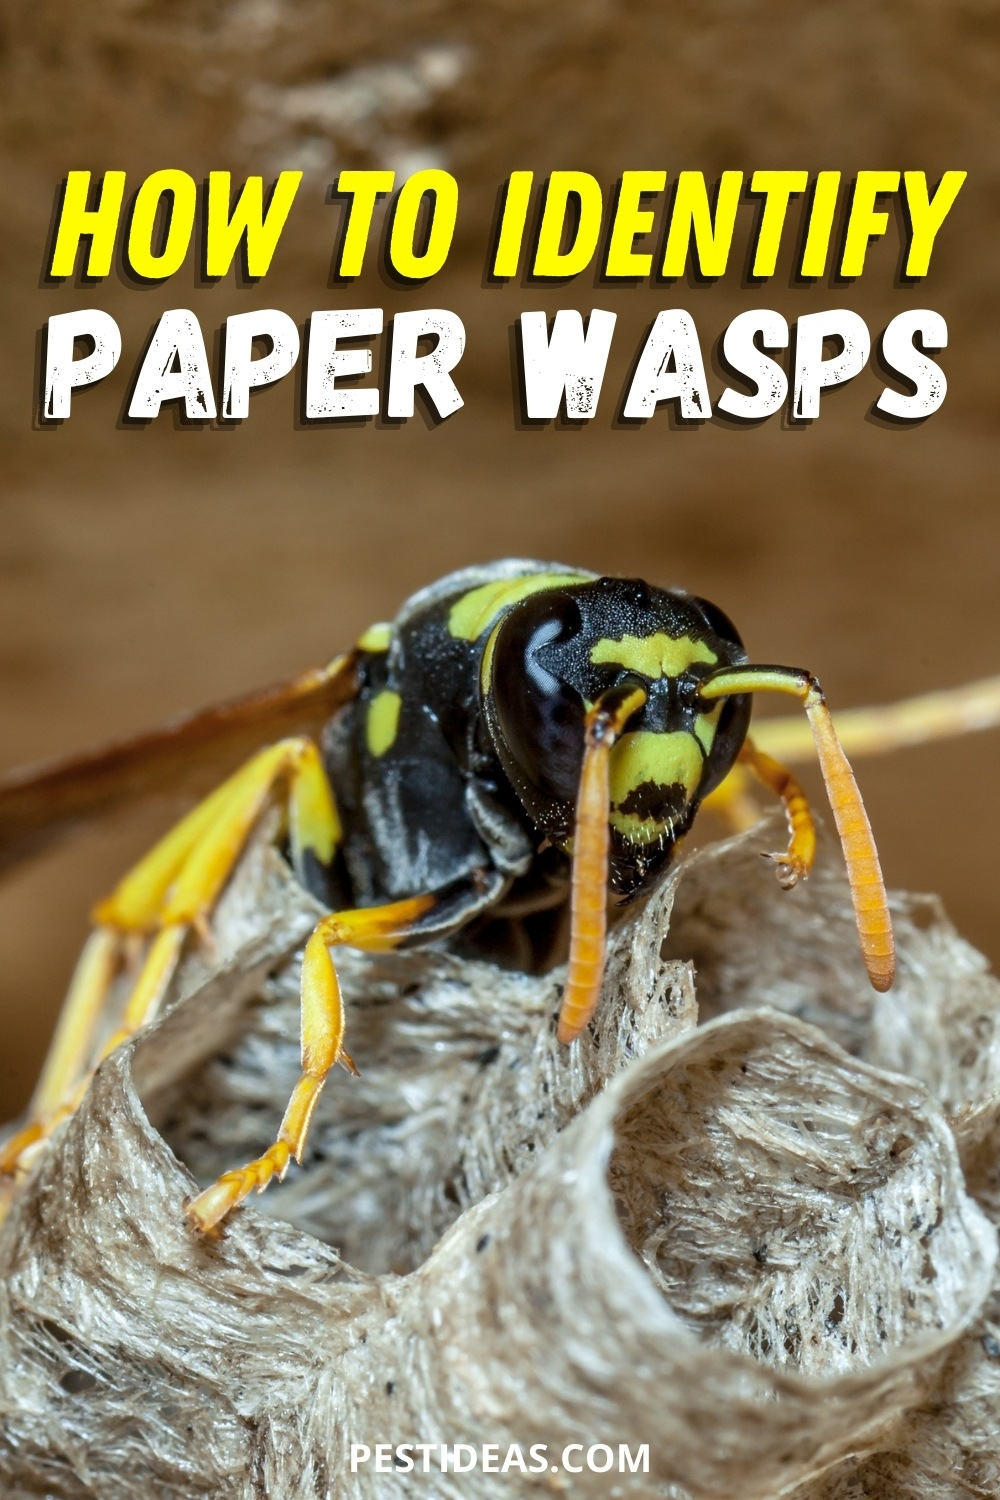 How to identify paper wasps